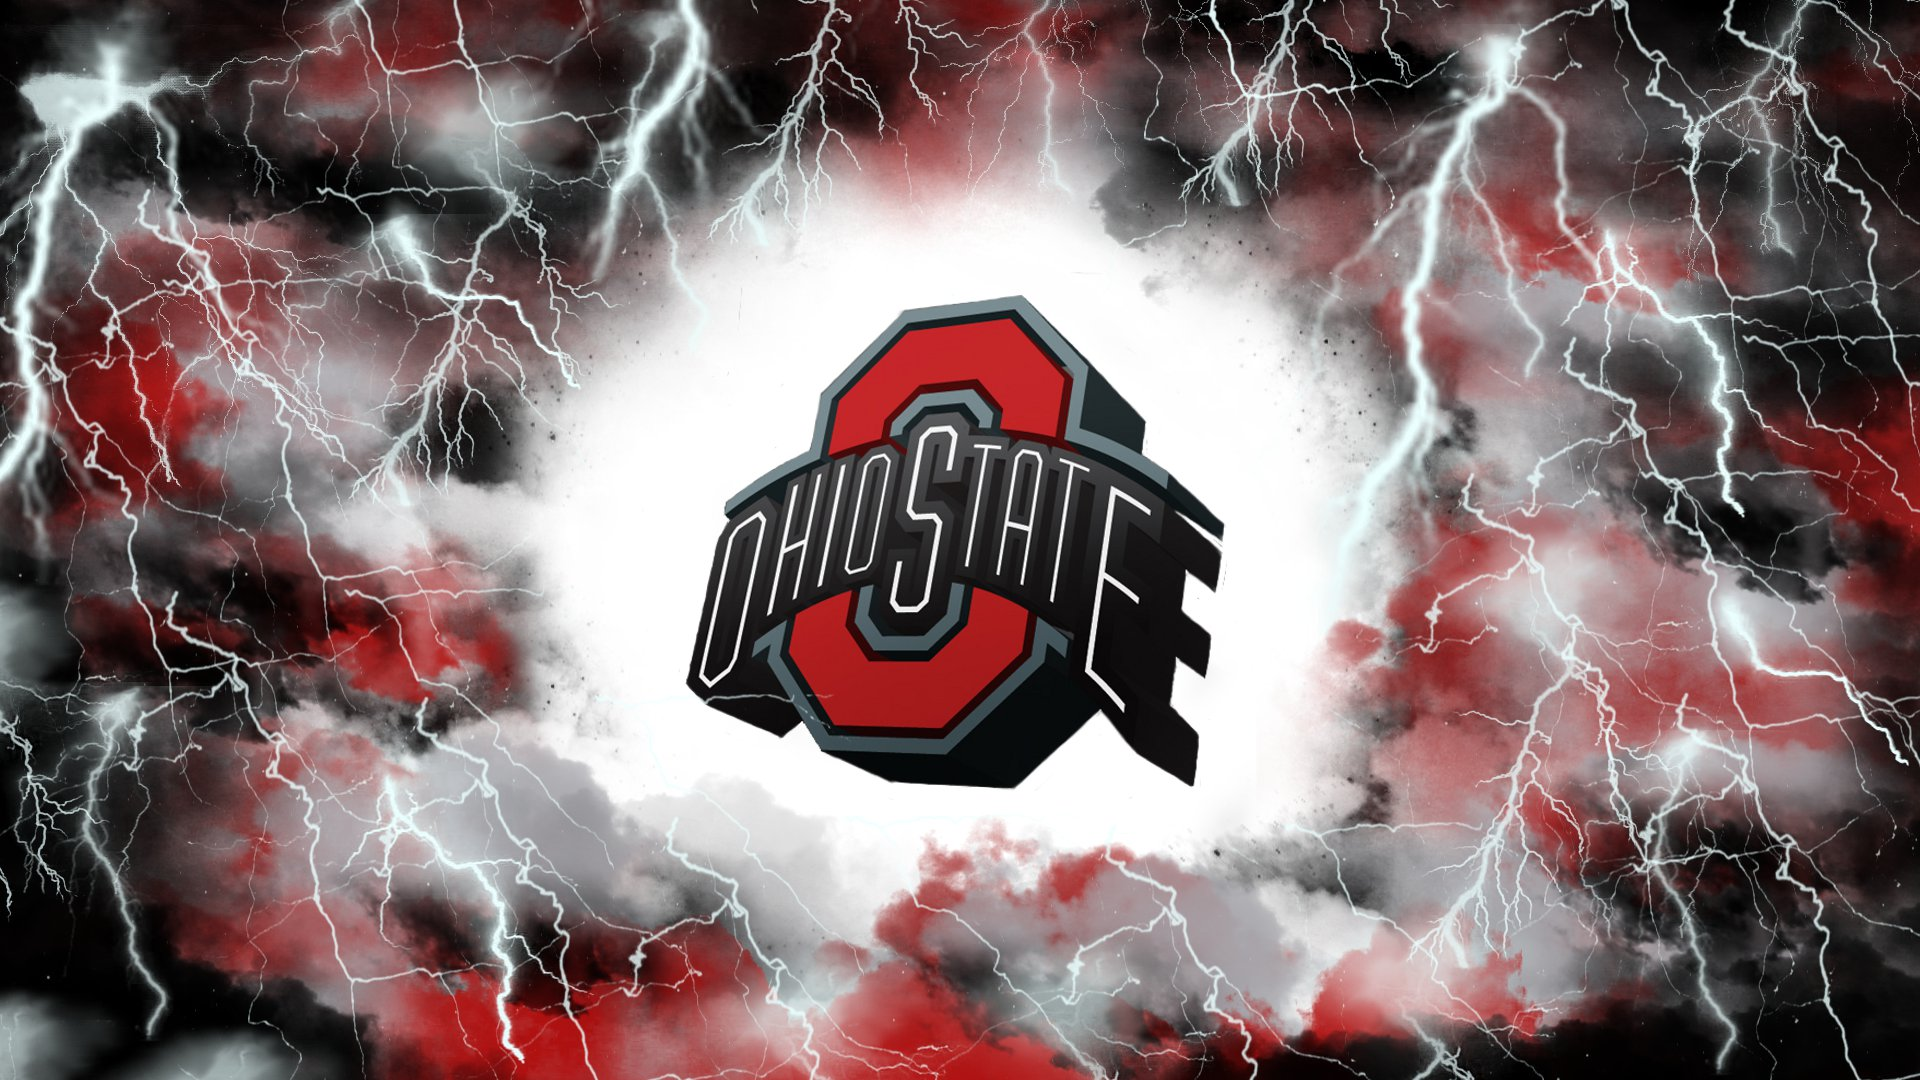 Ohio State Football images OSU Wallpaper wallpaper photos 28702258 1920x1080